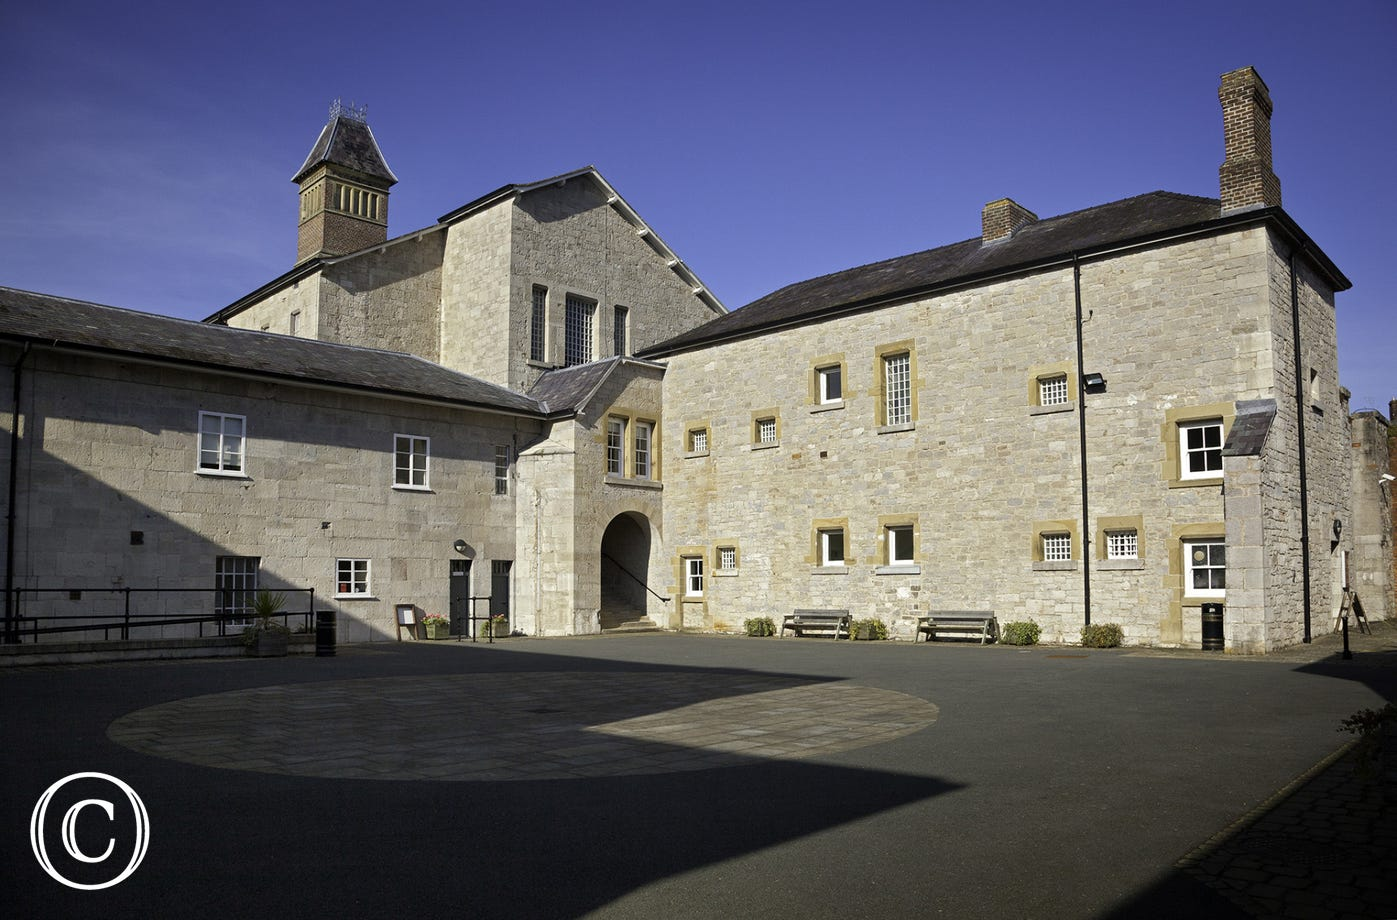 Gaol Museum at medieval town of Ruthin